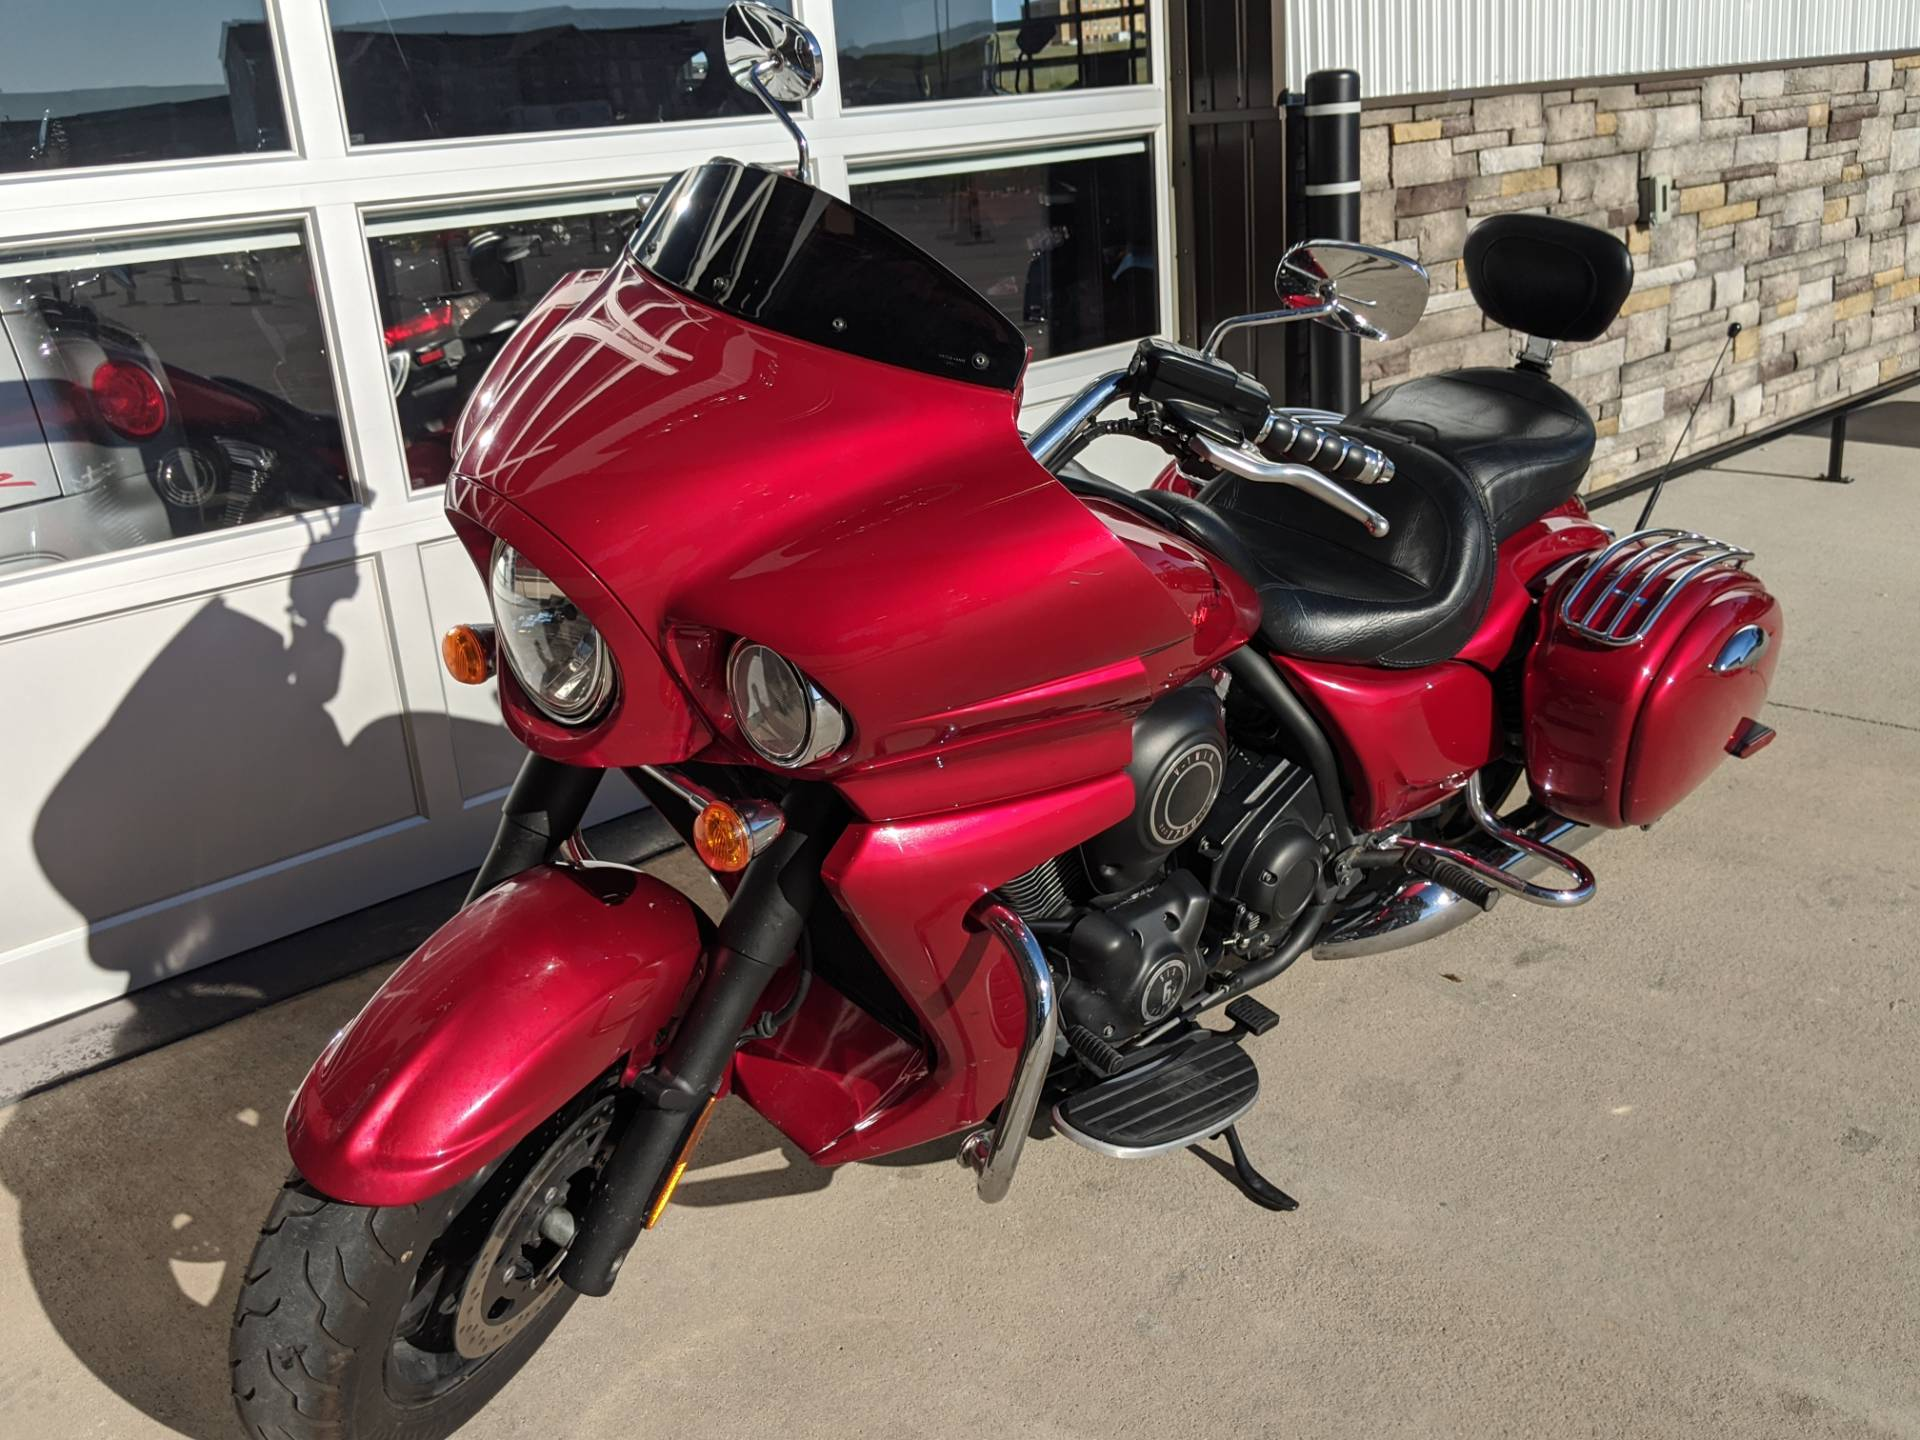 2011 Kawasaki Vulcan® 1700 Vaquero™ in Rapid City, South Dakota - Photo 8